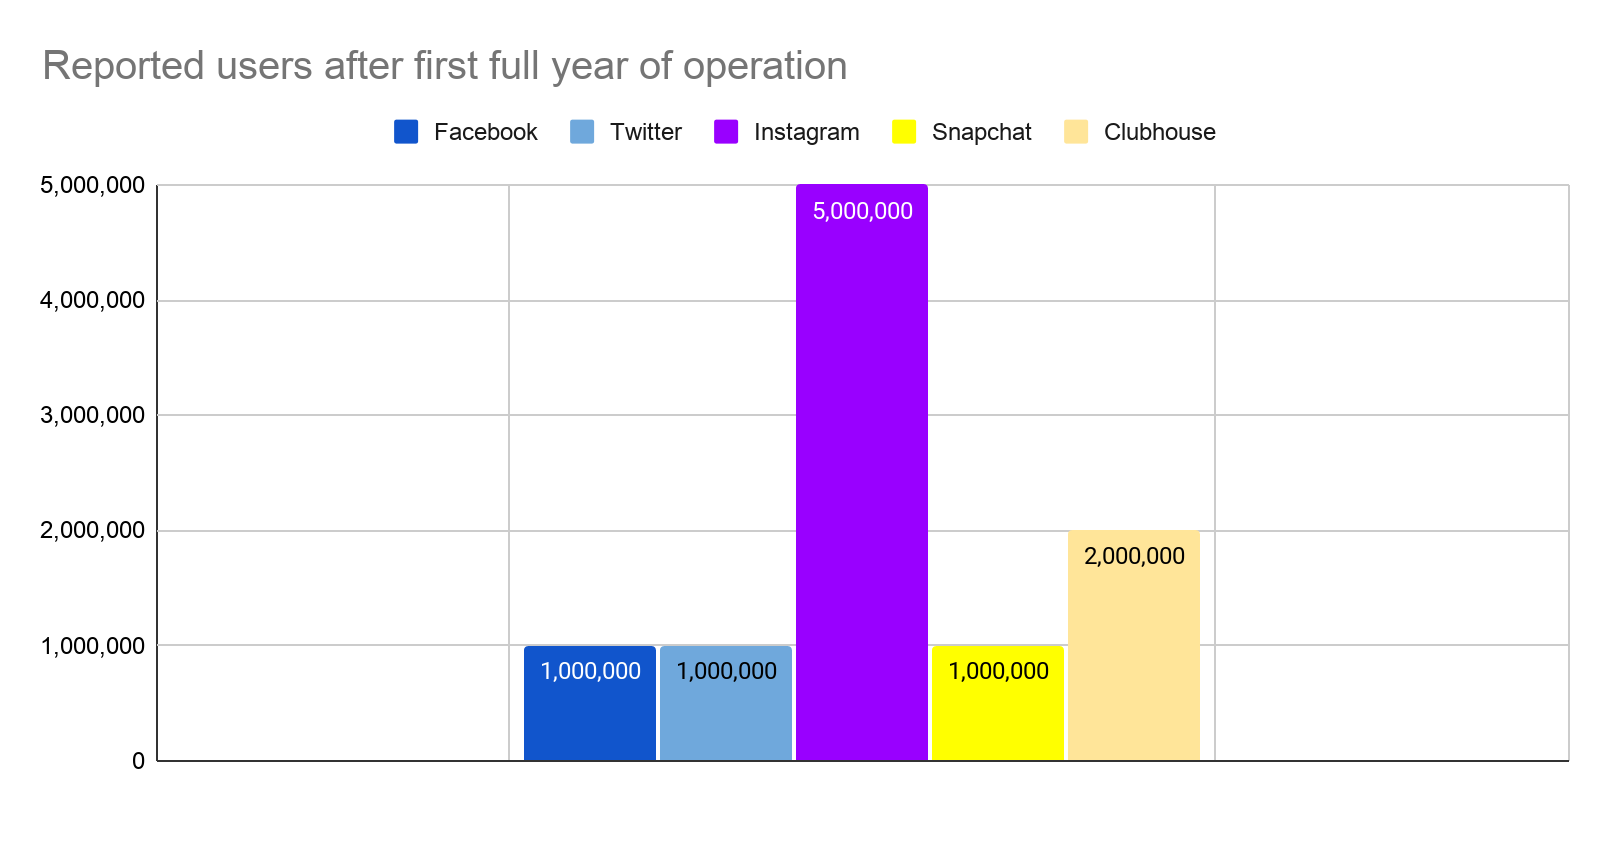 Clubhouse year one user growth vs facebook, Twitter, and Instagram